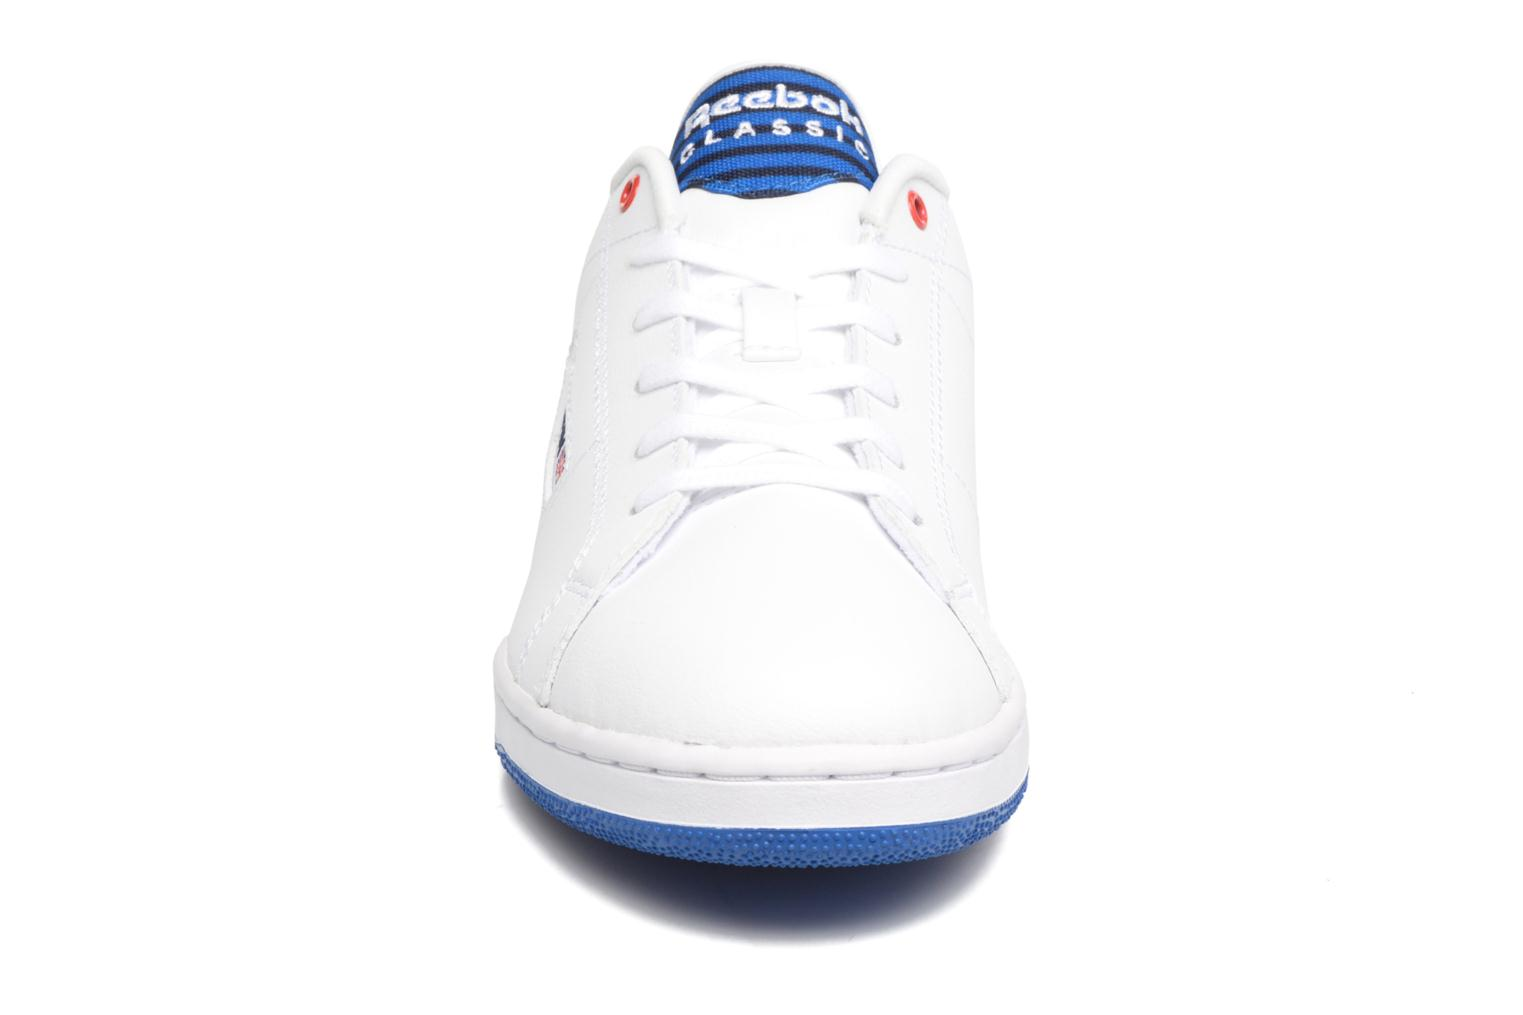 Npc Ii Un Stripes White/Awesome Blue/Navy/Primal Red